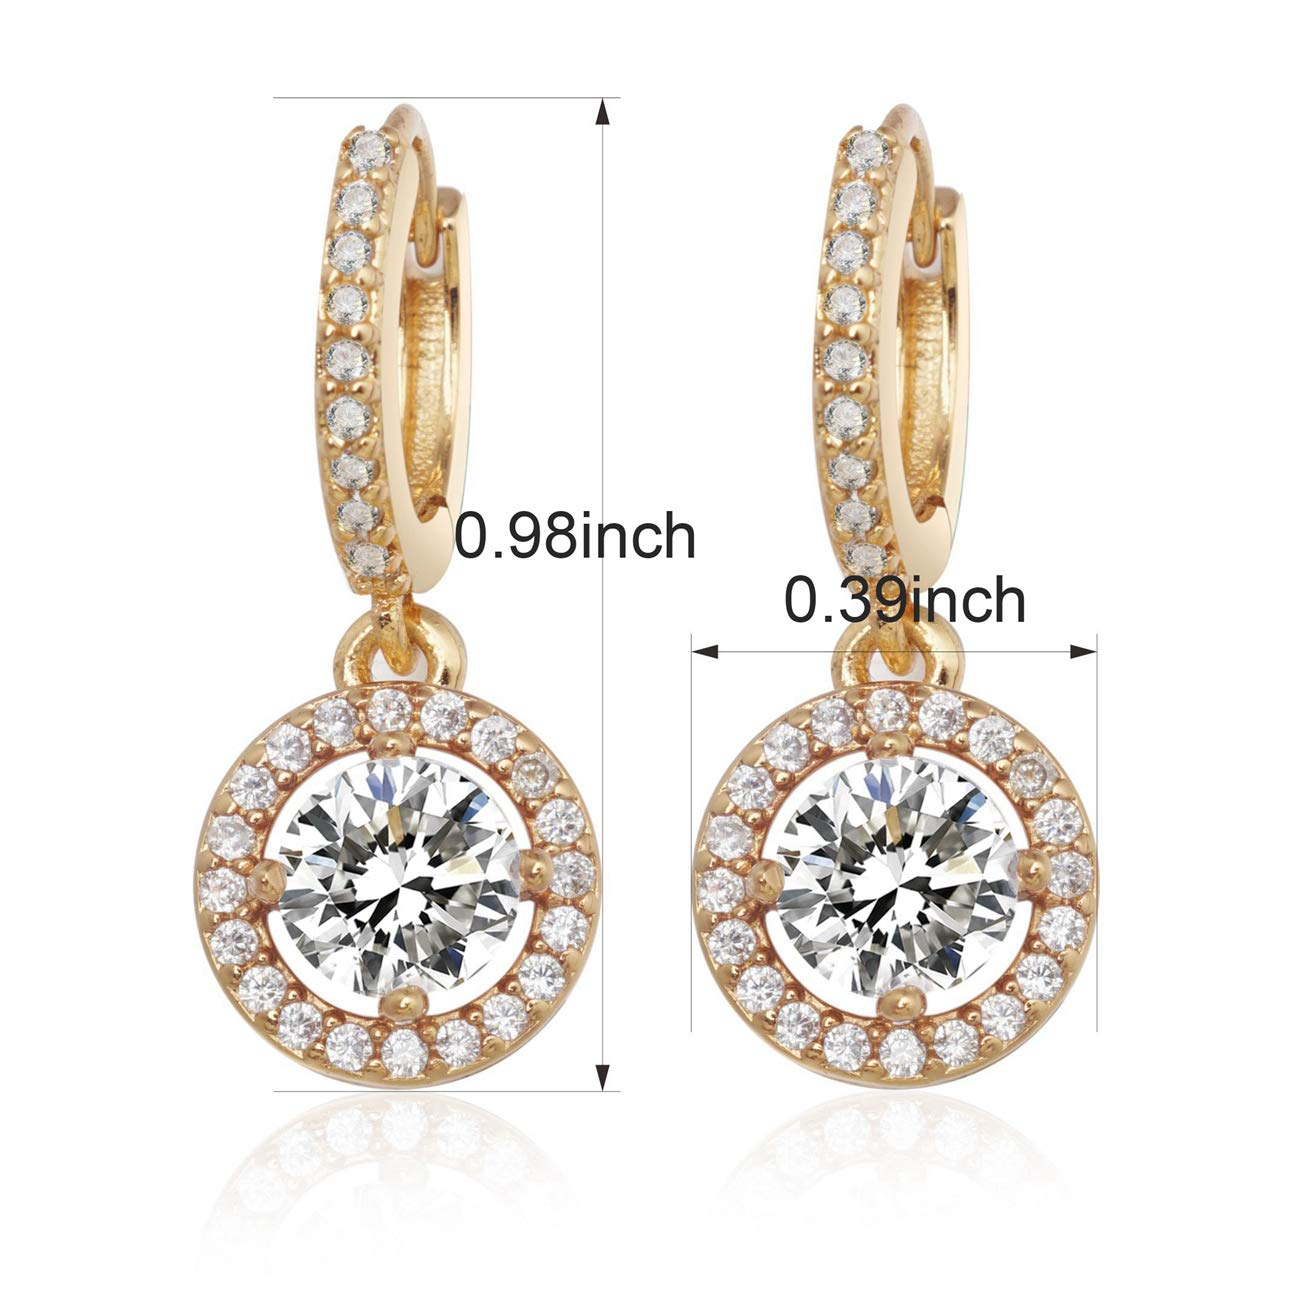 Anni Coco 18K Gold Plated Clear CZ Cubic Zirconia Drop Earrings Women Lady Girl Jewelry